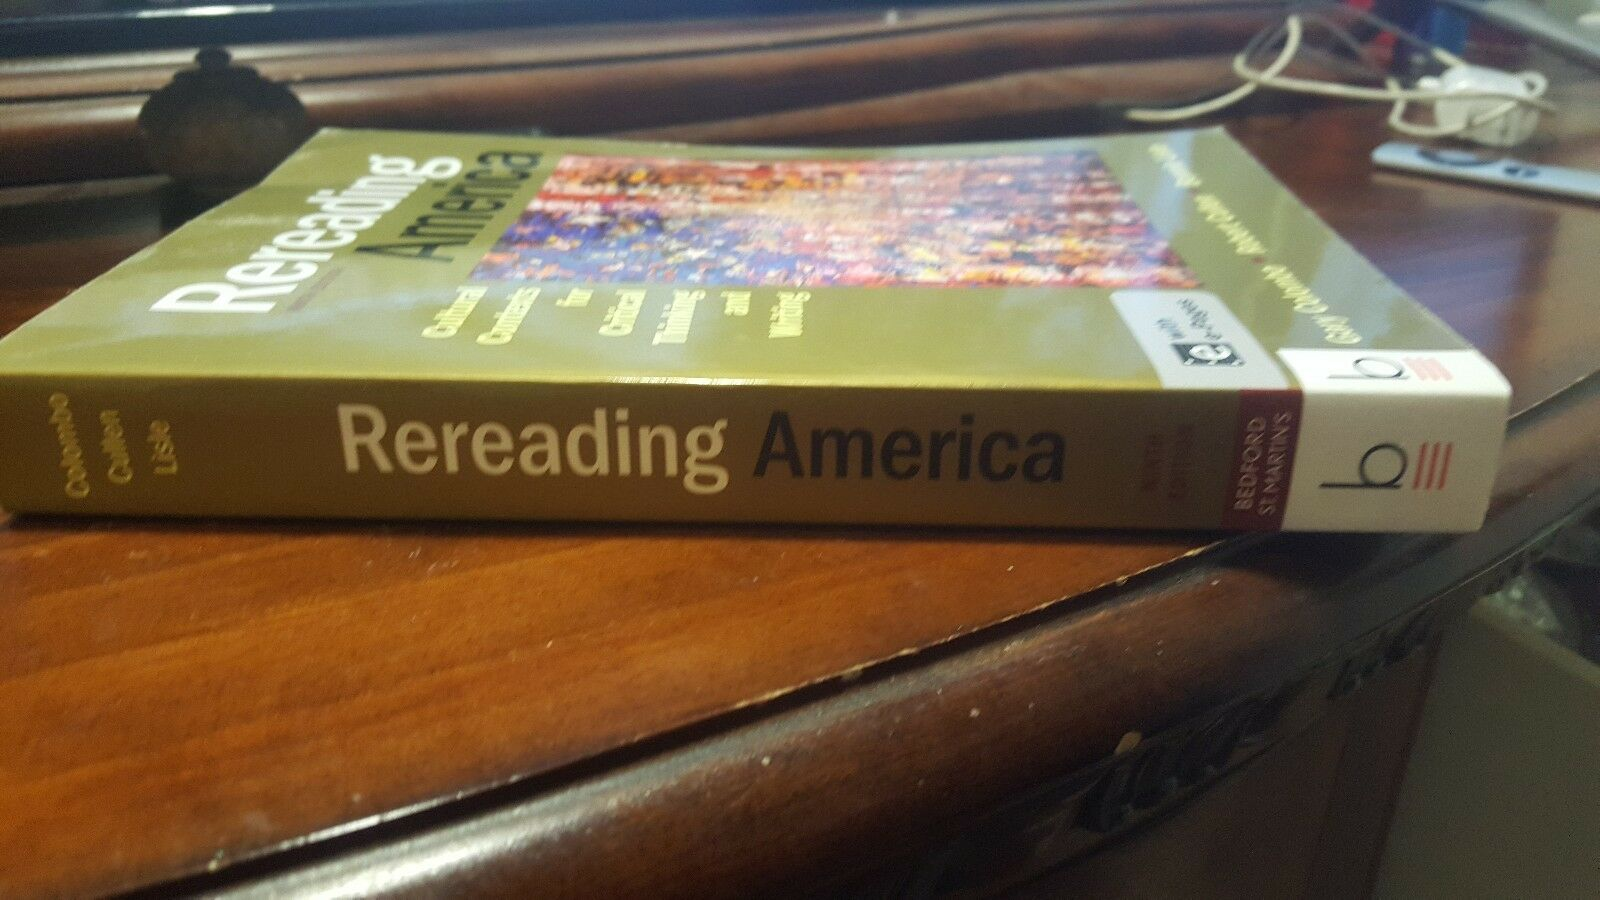 Rereading america cultural contexts for critical thinking and rereading america cultural contexts for critical thinking and writing by bonnie lisle gary colombo and robert cullen 2013 paperback 9th edition fandeluxe Image collections